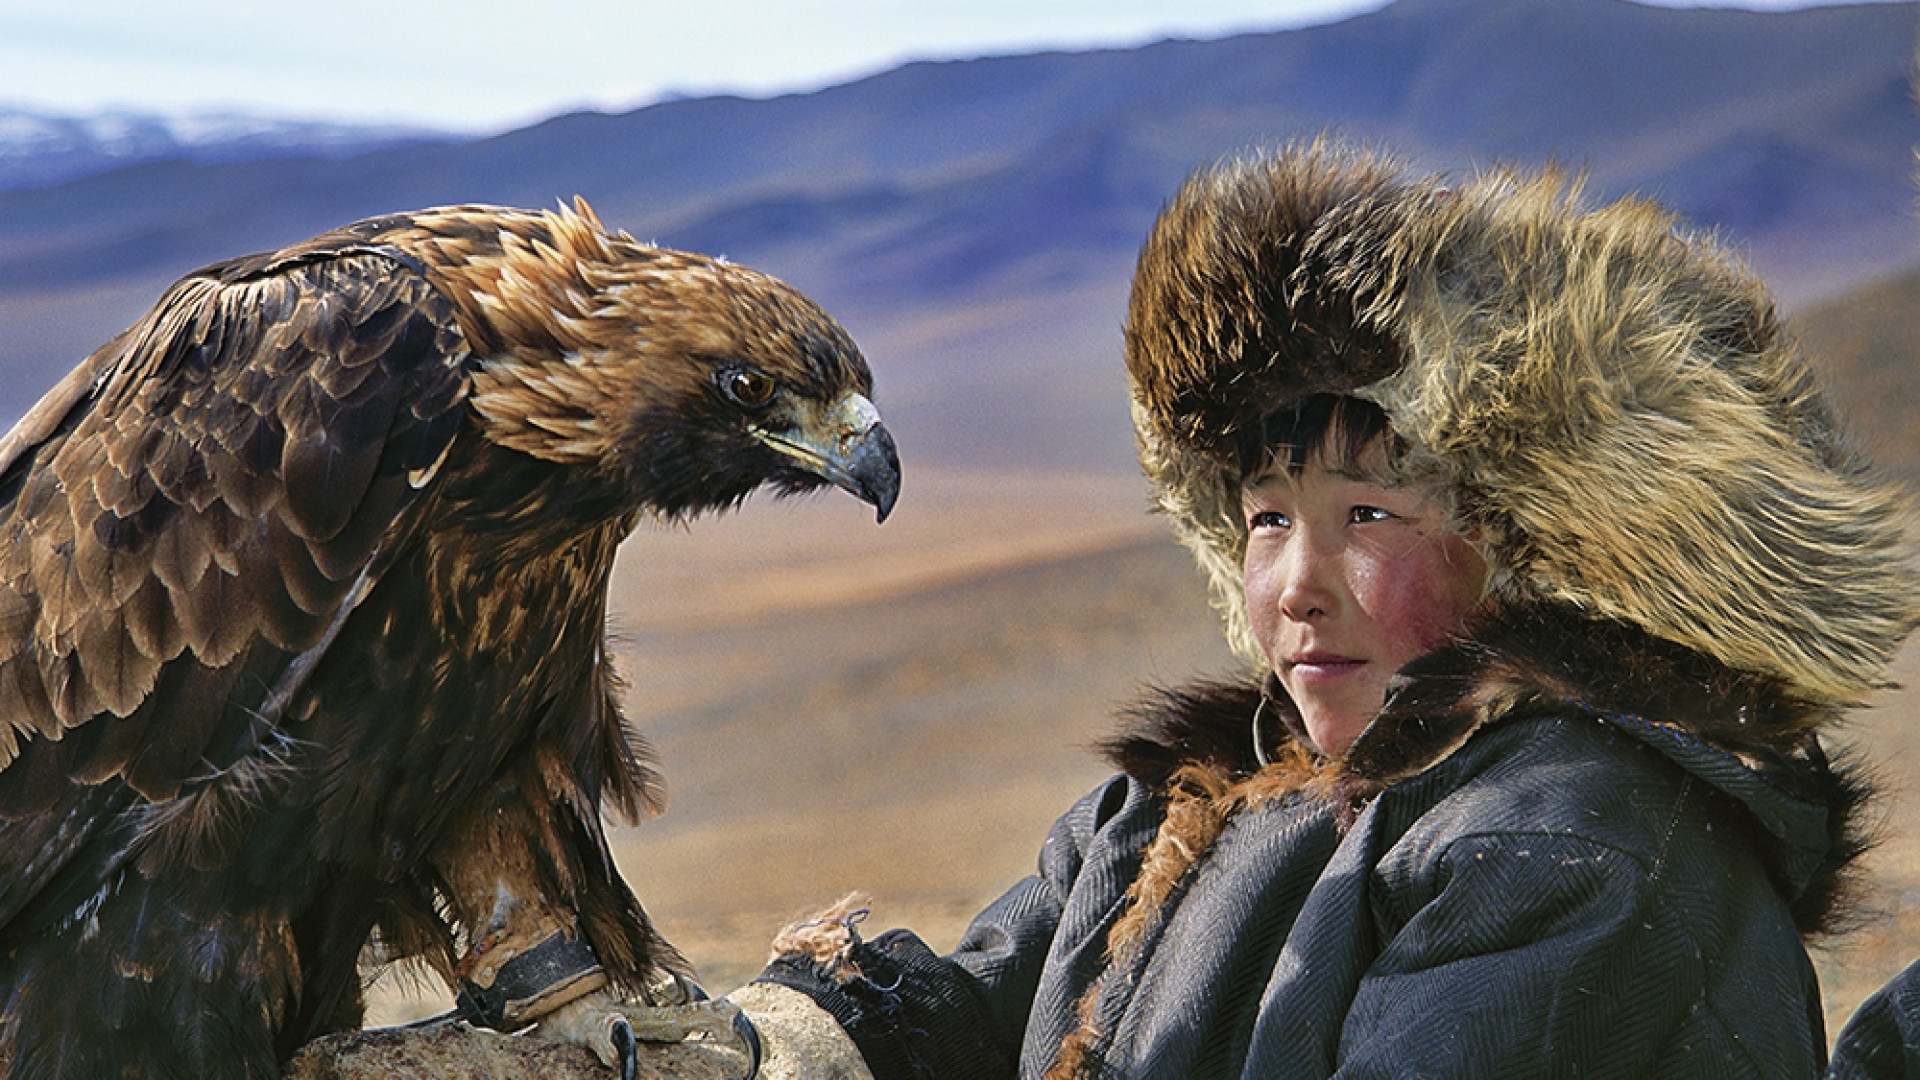 A Mongolian child with a golden eagle